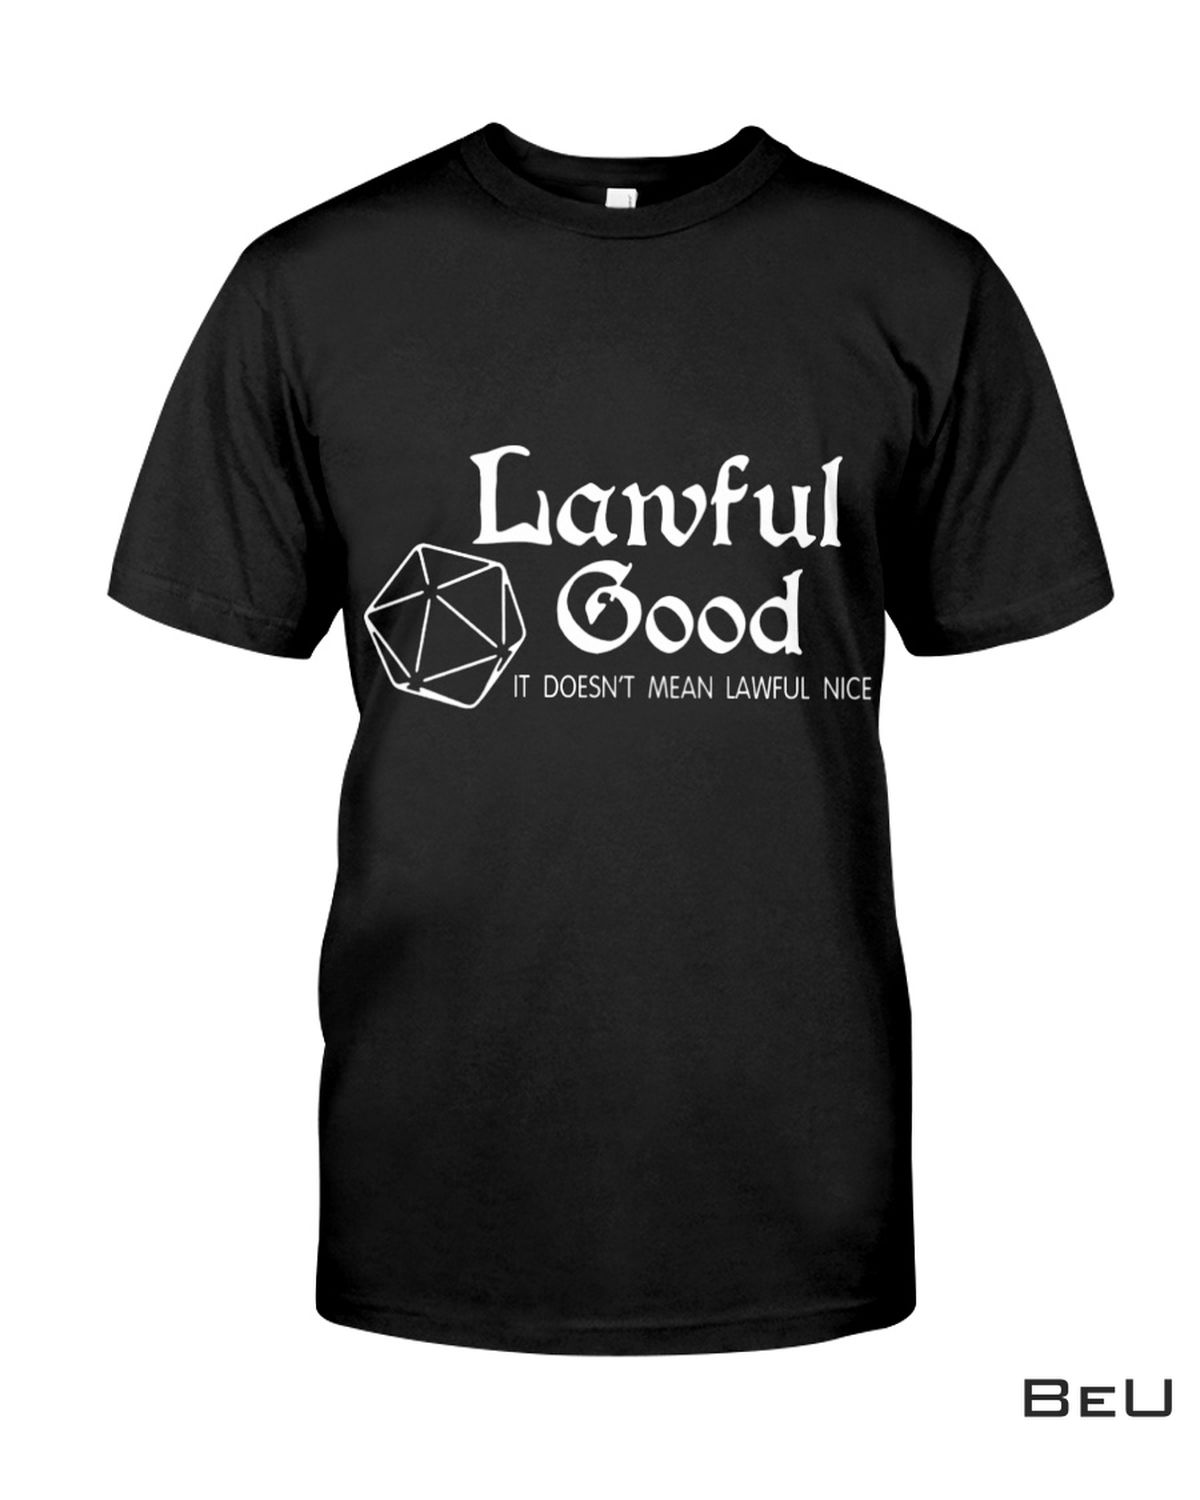 Lawful Good Doesn't Mean Lawful Nice Shirt